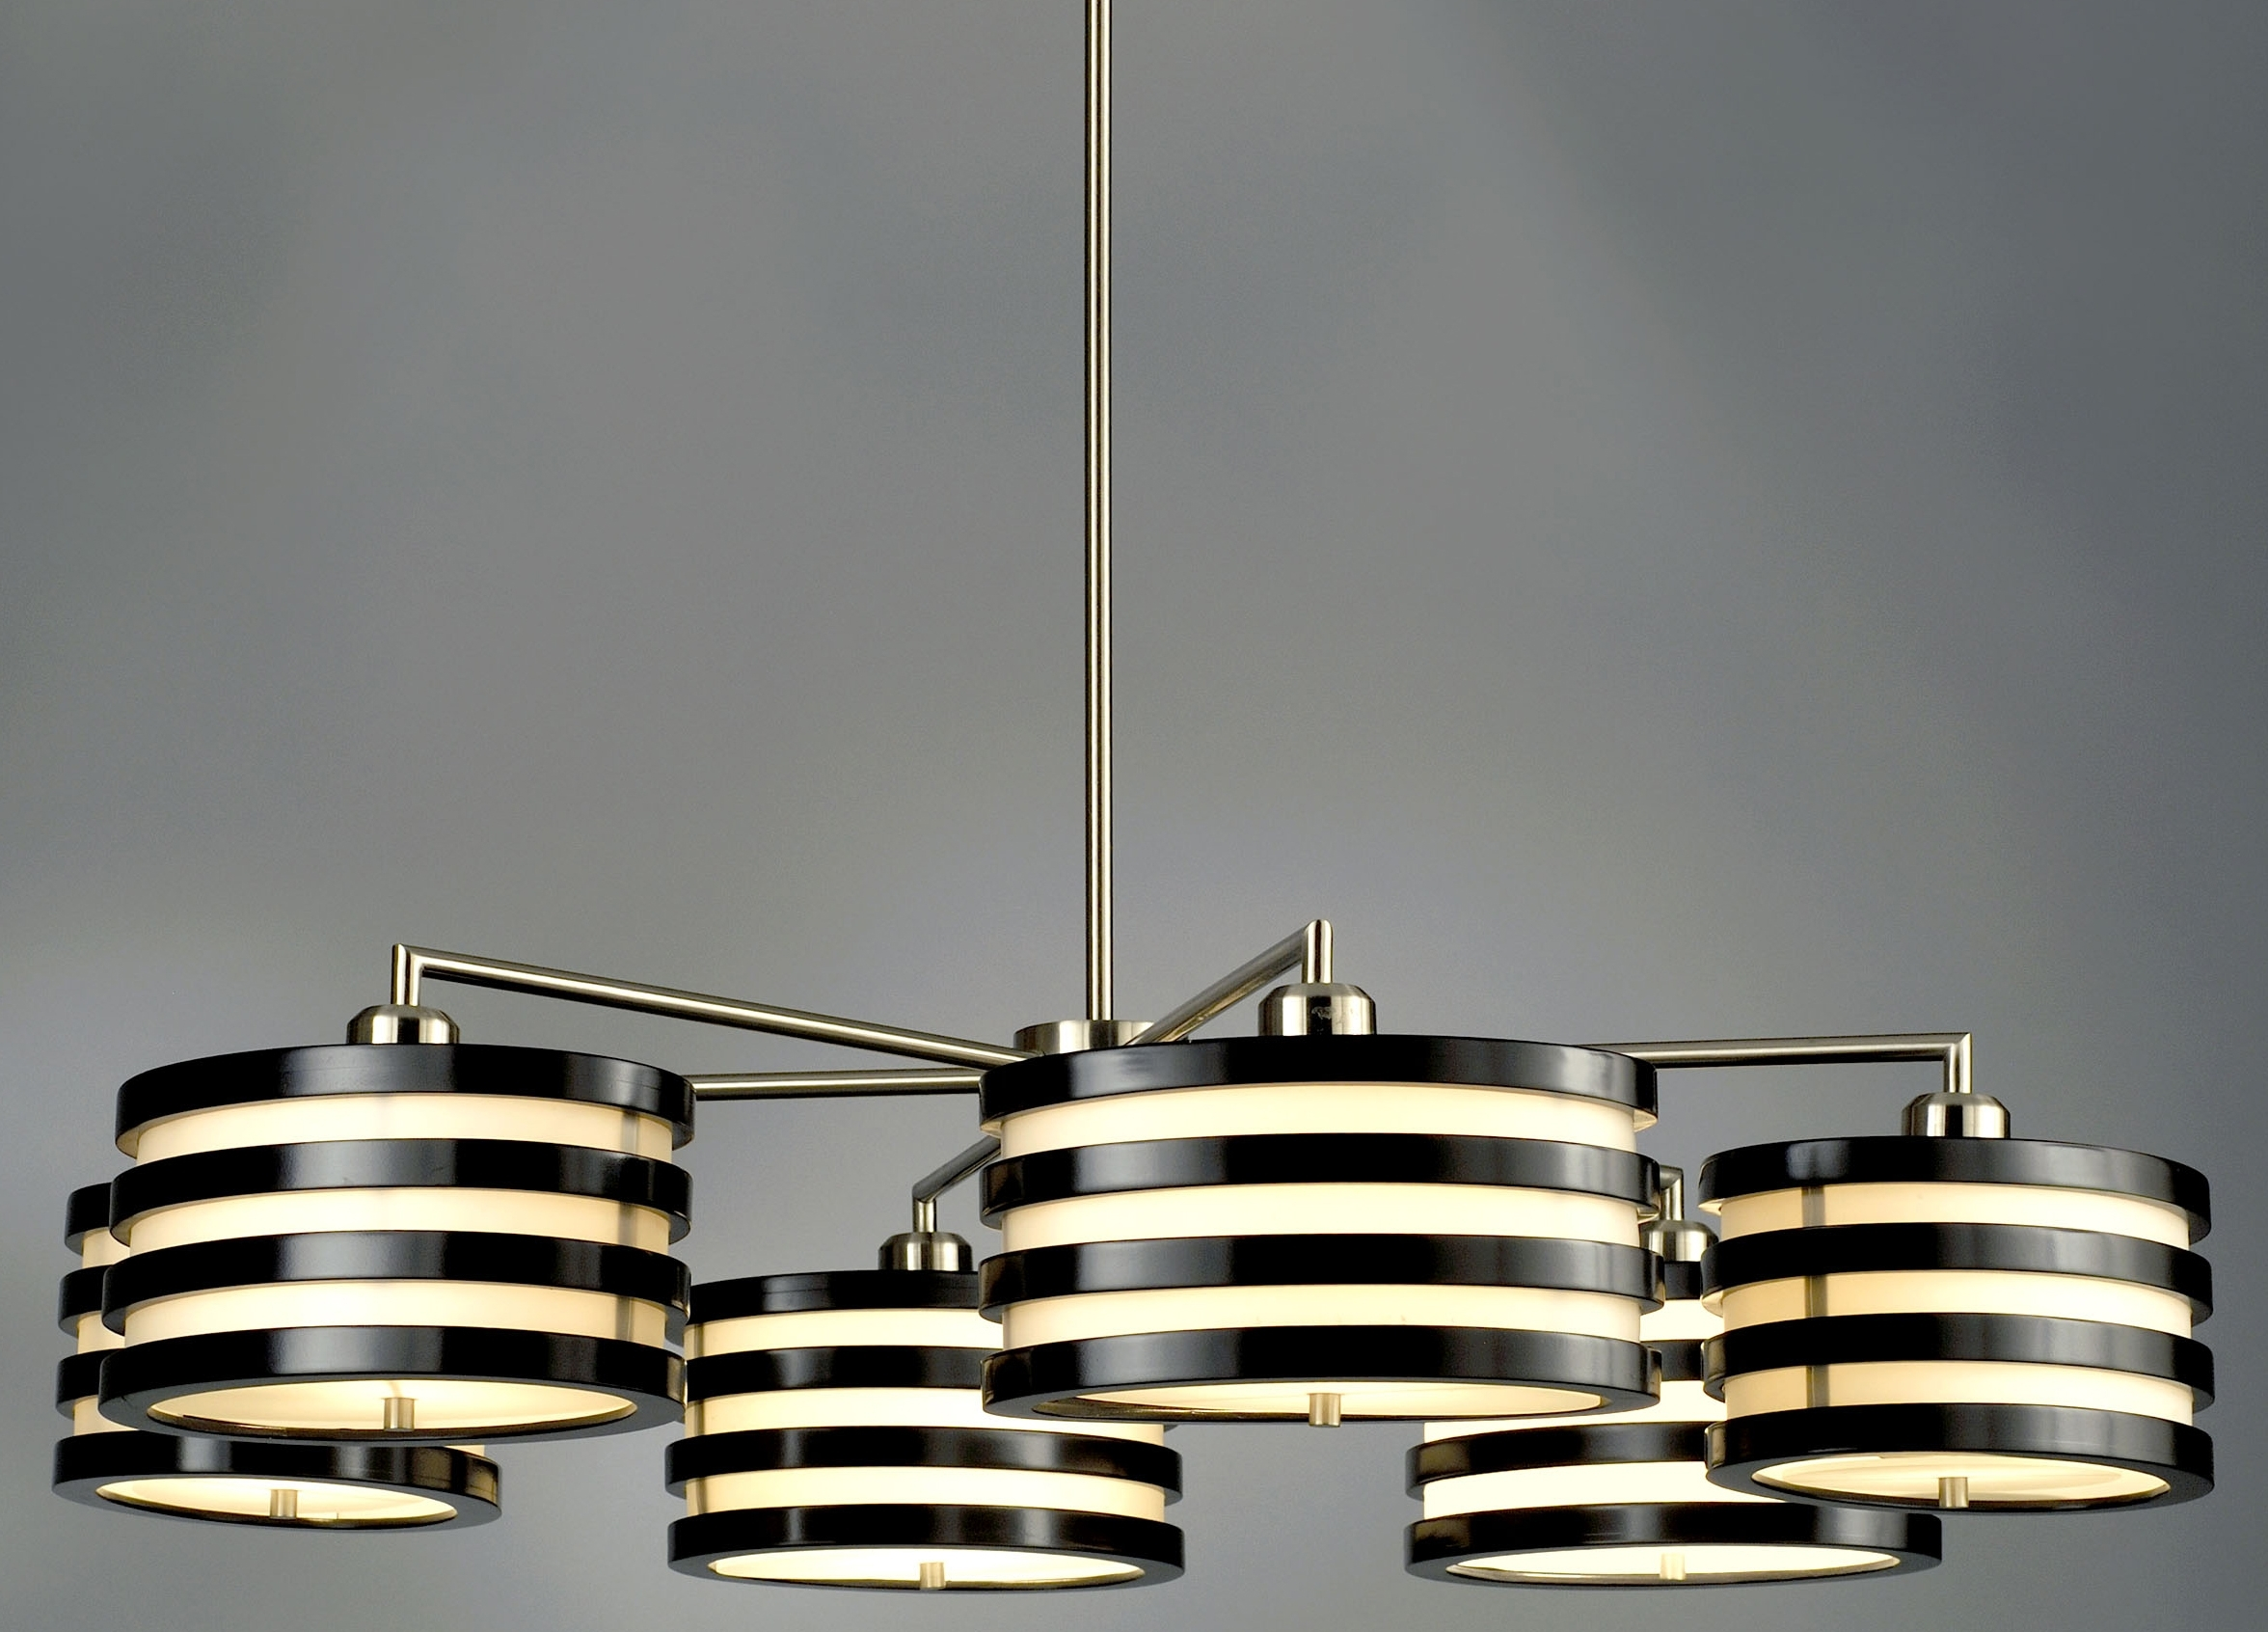 Contemporary Chandeliers For Most Recent Home Decor + Home Lighting Blog » Blog Archive » Nova Lighting Kobe (View 6 of 15)